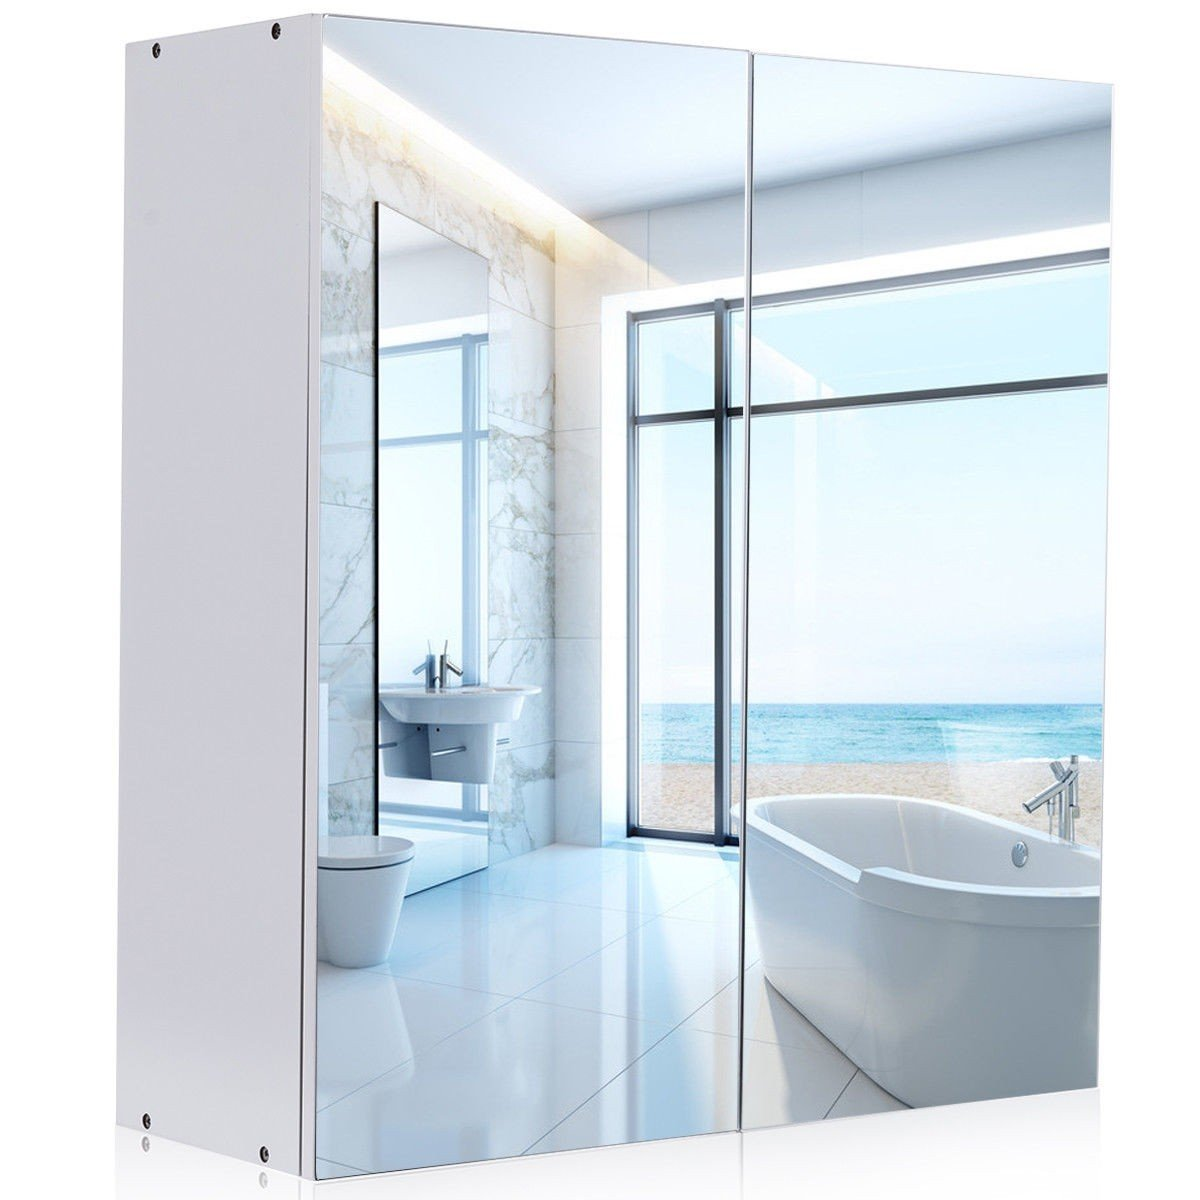 Mirror Cabinet, WATERJOY Wall-Mounted Bathroom Mirror Medicine Cabinet with Mirrored Doors and Shelves, Home Fashions Cabinet Cupboard with Modern Design, White